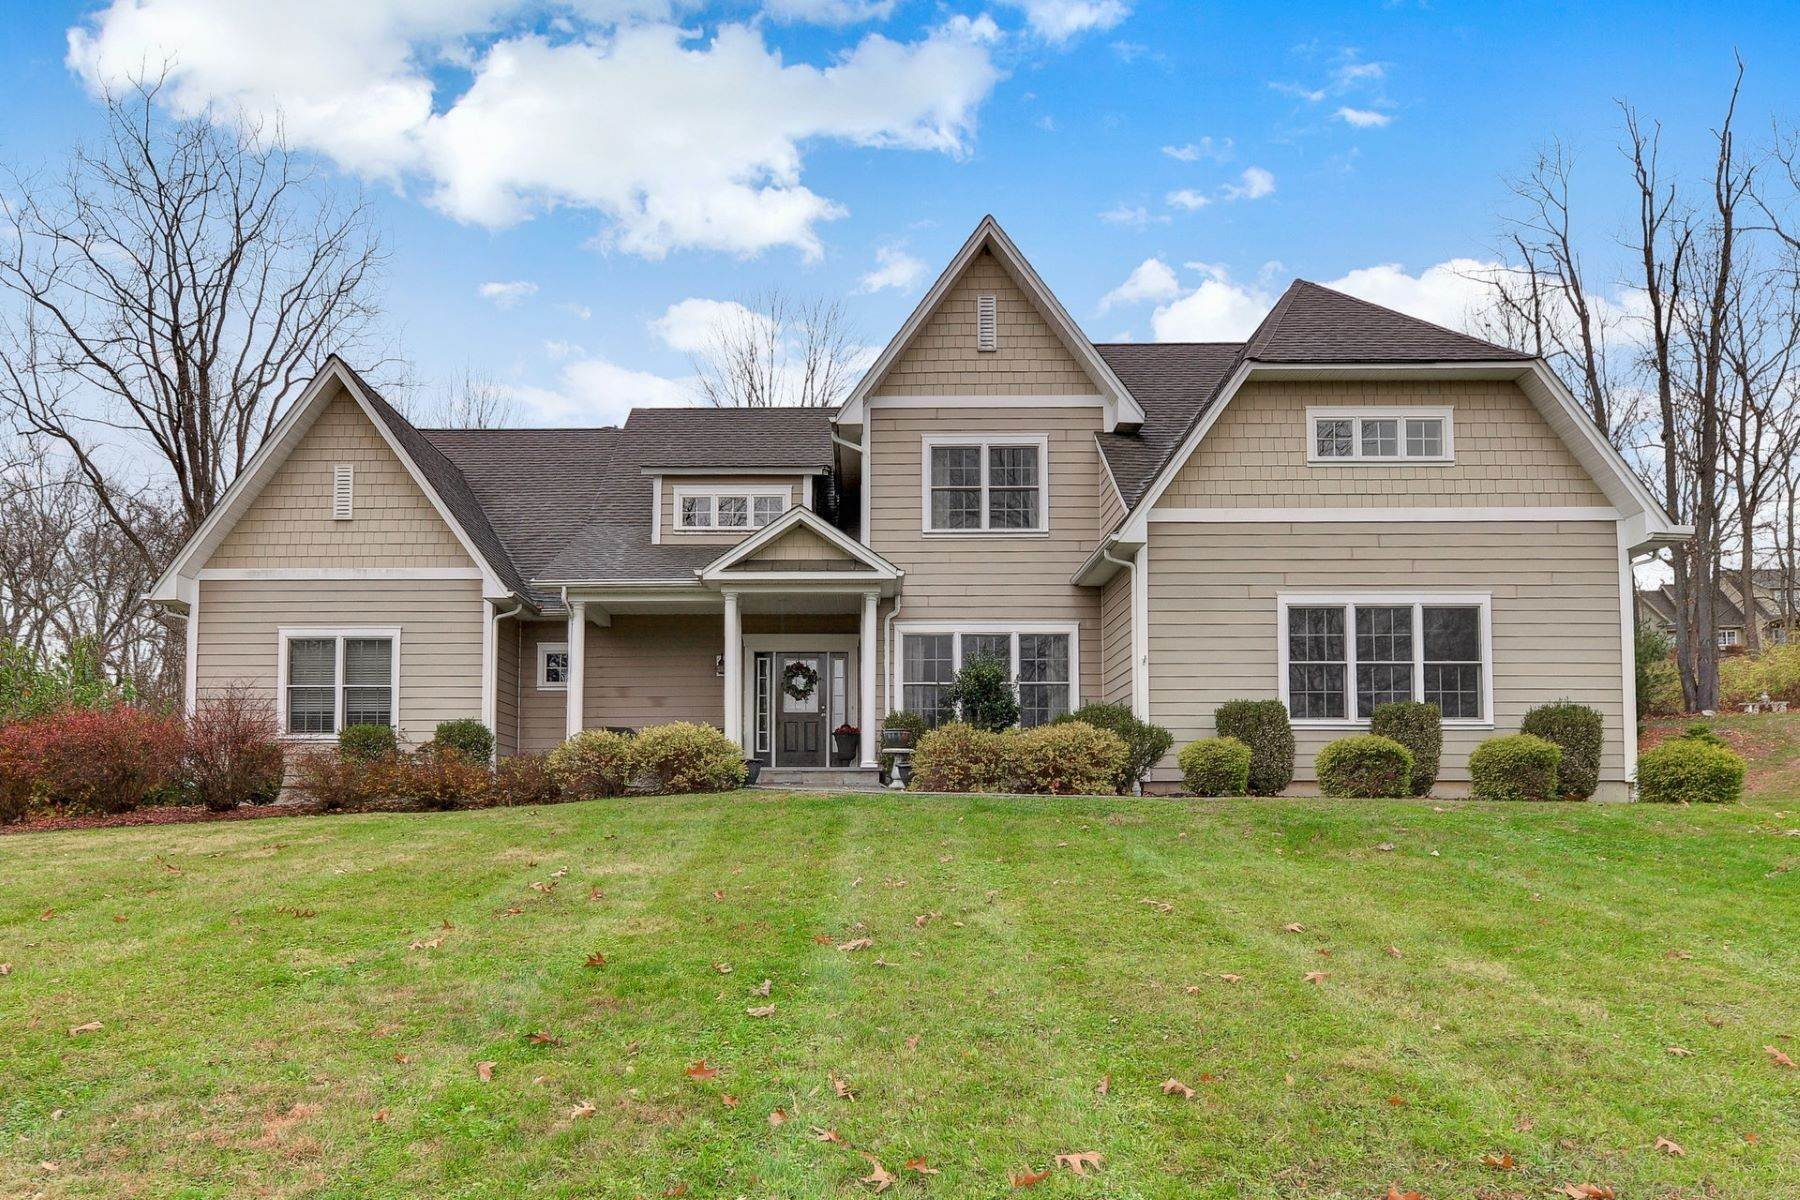 Single Family Homes for Sale at Contemporary/Colonial 1 Old Orchard Ridge Way Warwick, New York 10990 United States